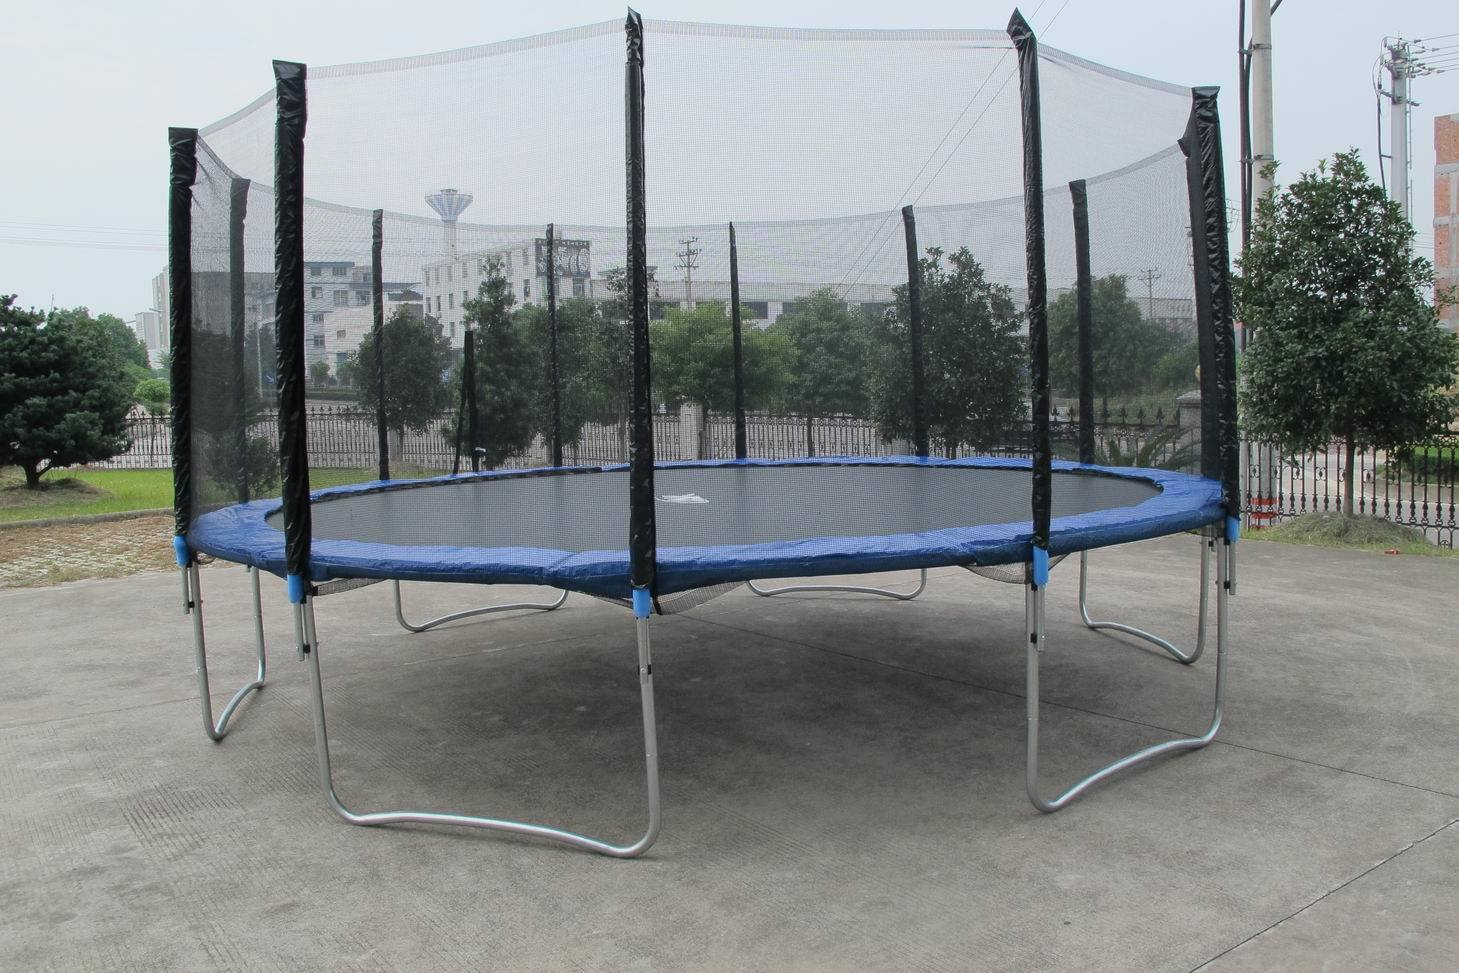 16ft Outdoor Trampoline China 16ft Outdoor Trampoline